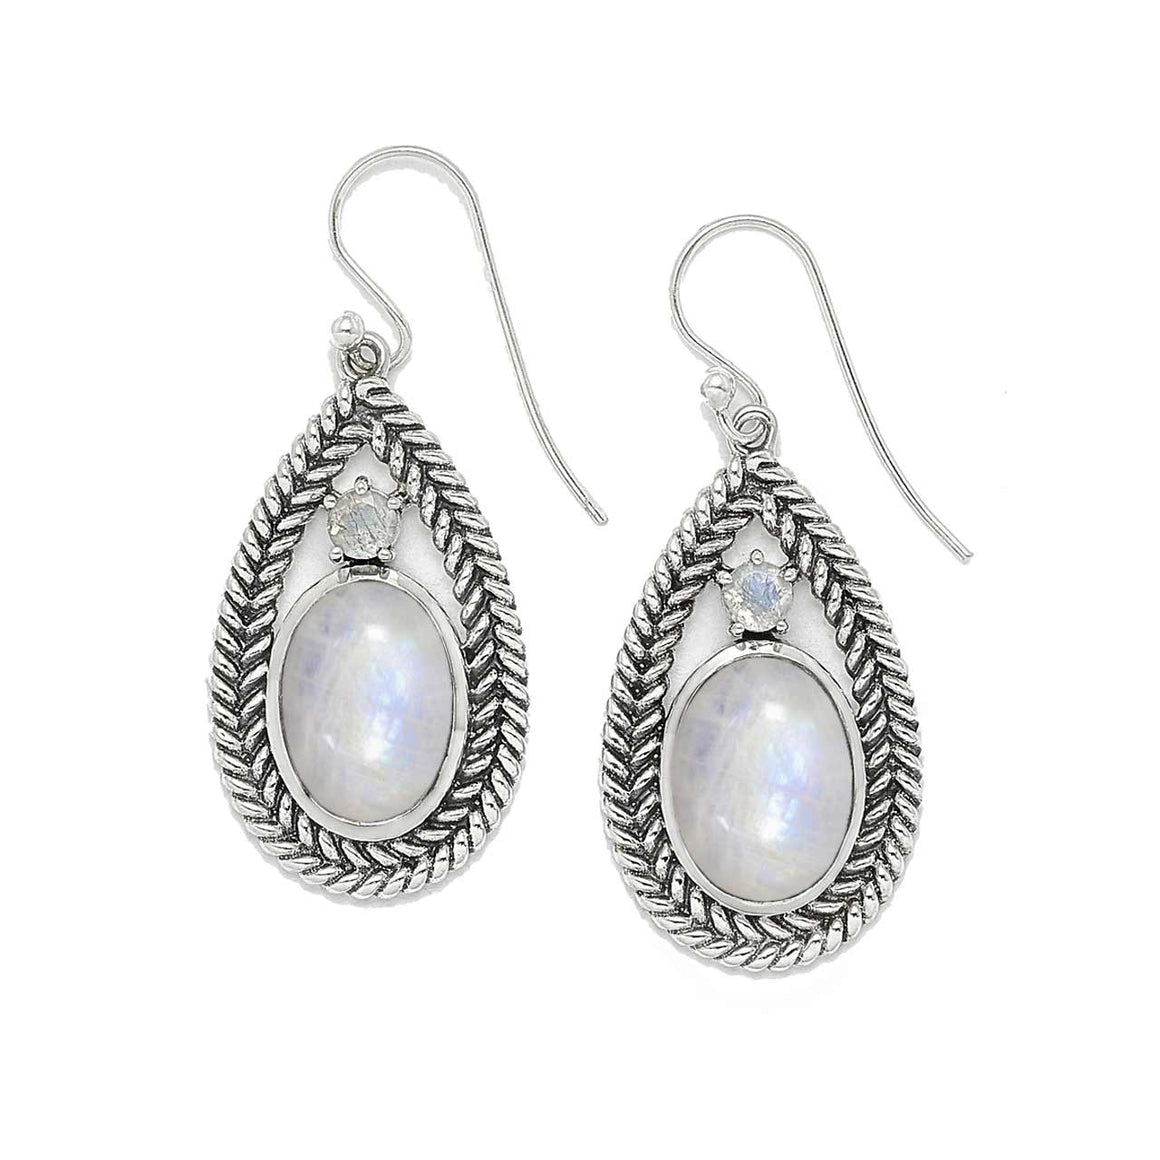 Rainbow Moonstone and Braided Silver Earrings